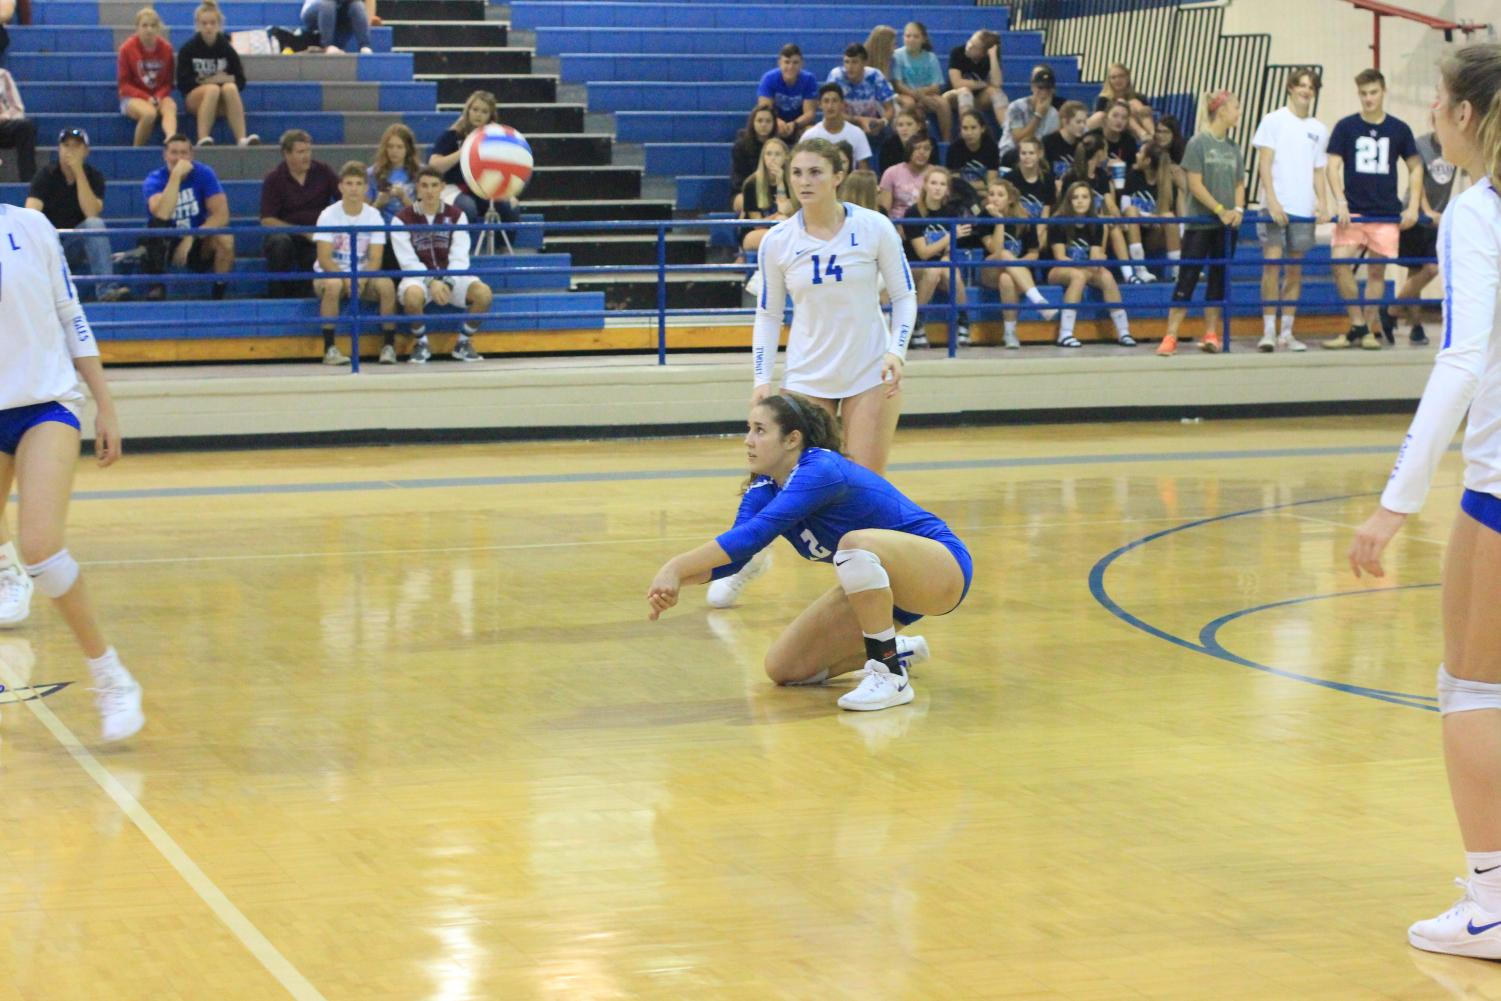 Senior Jennifer Moyer prepares to pass the incoming ball. Moyer has played volleyball since fifth grade and is the captain and lead defensive player for the Lady Eagles varsity volleyball team.